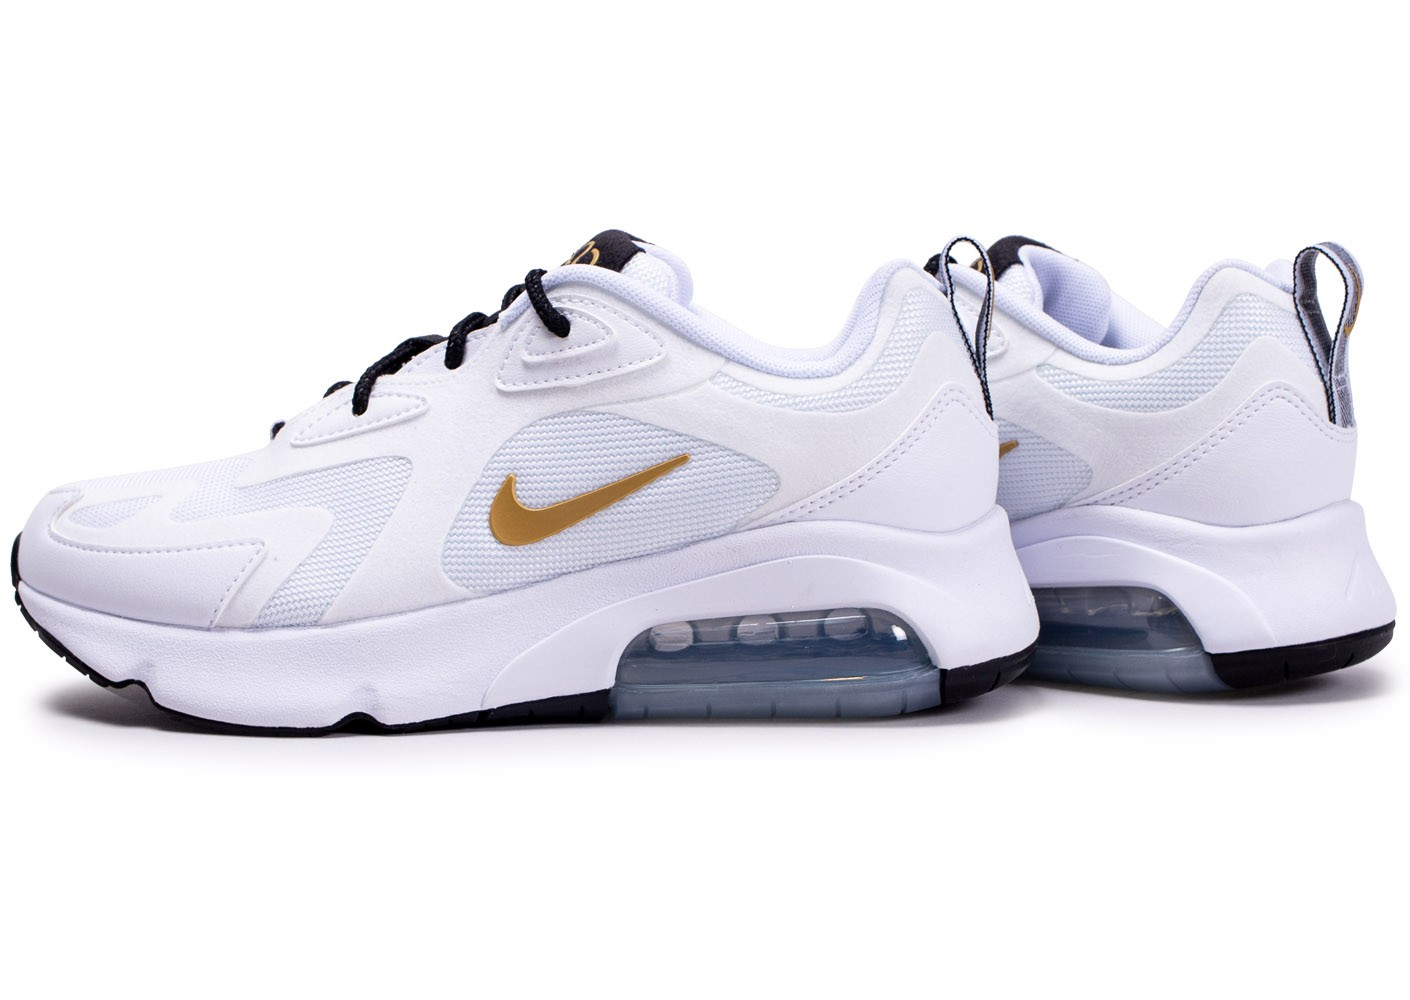 Nike Air Max 200 blanc or femme - Chaussures Basket mode ...